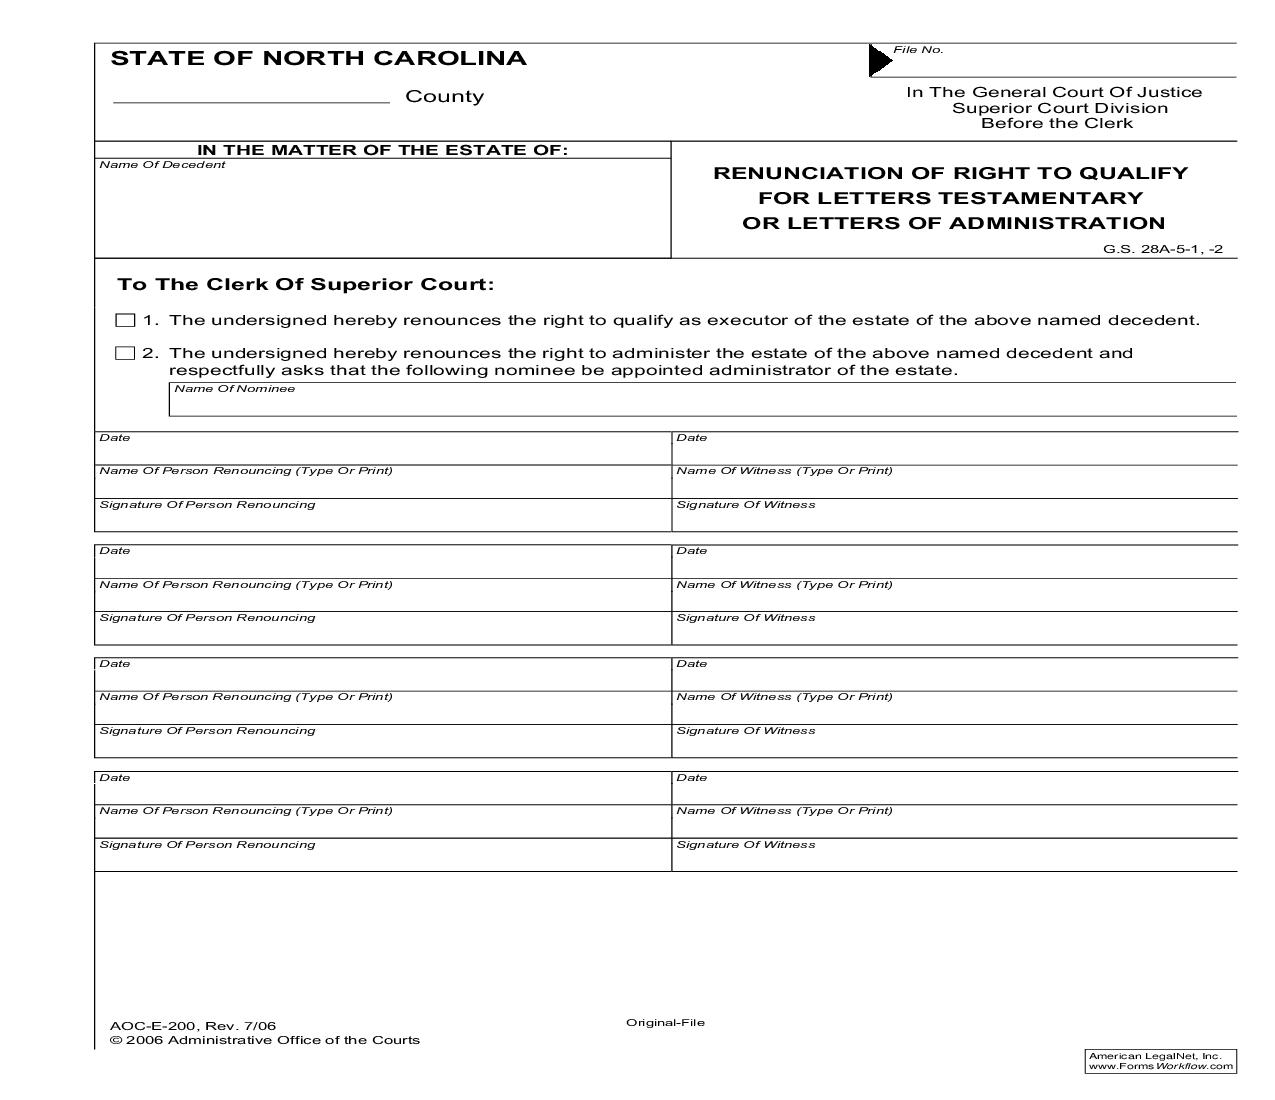 Renunciation Of Right To Qualify For Letters Testamentary Or Letters Of Administration {E-200} | Pdf Fpdf Doc Docx | North Carolina